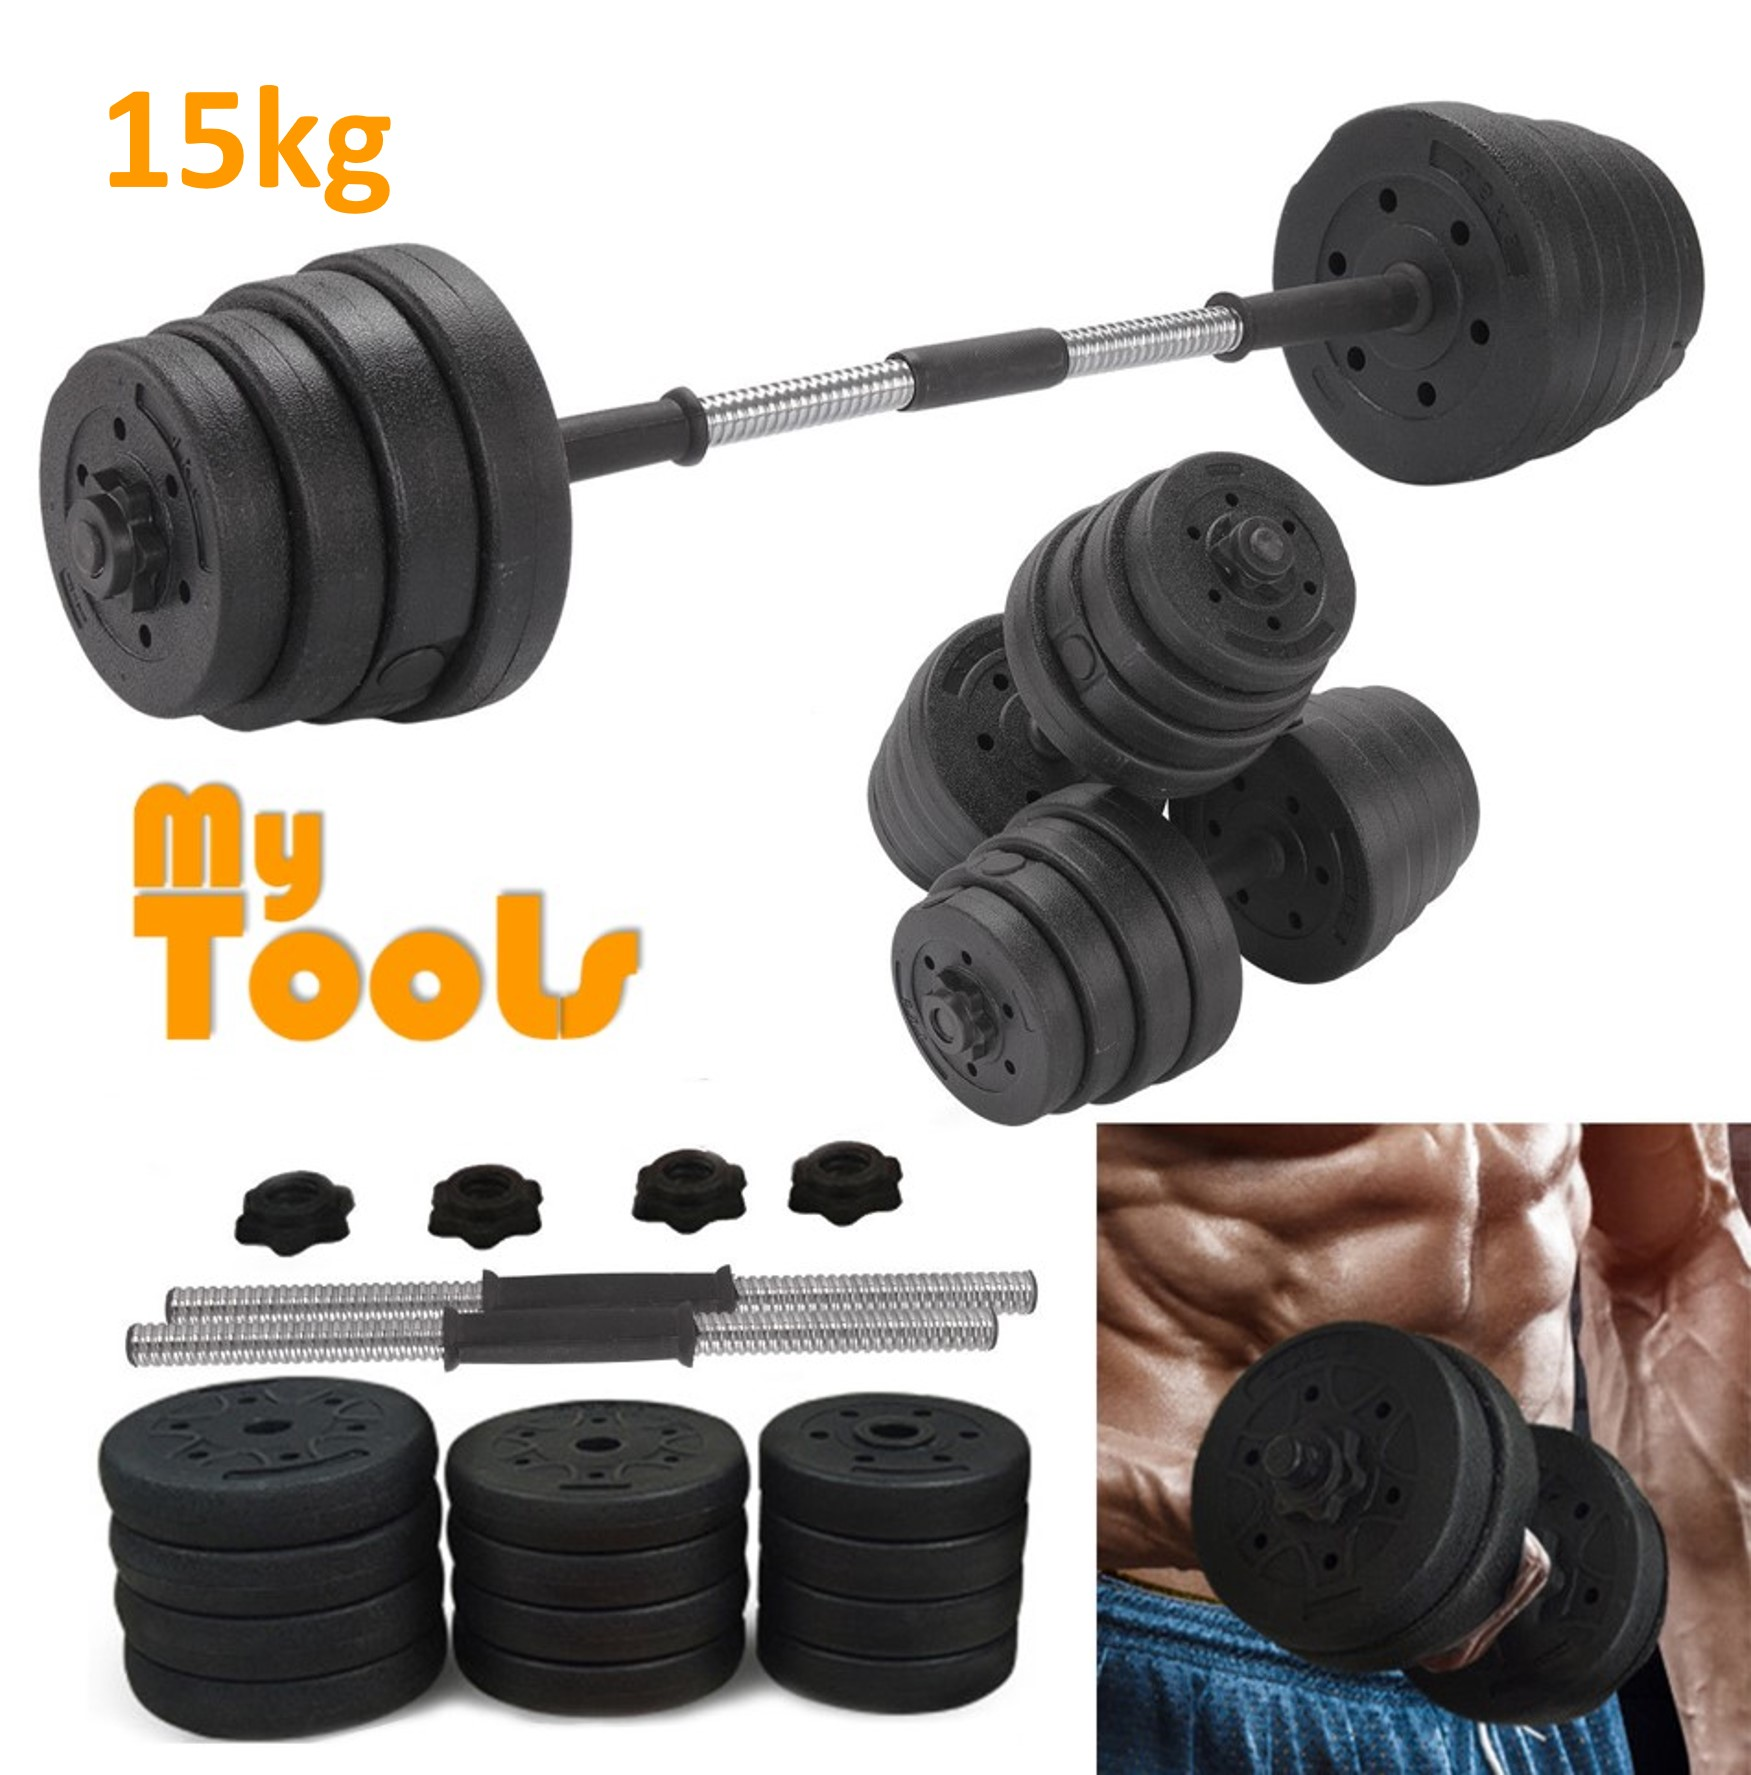 Mytools 15kg Dumbbell Bumper Rubber Coated 15kg (7.5kg x 2pcs) + 30cm Connector Barbell Set Converter Adjustable Weight